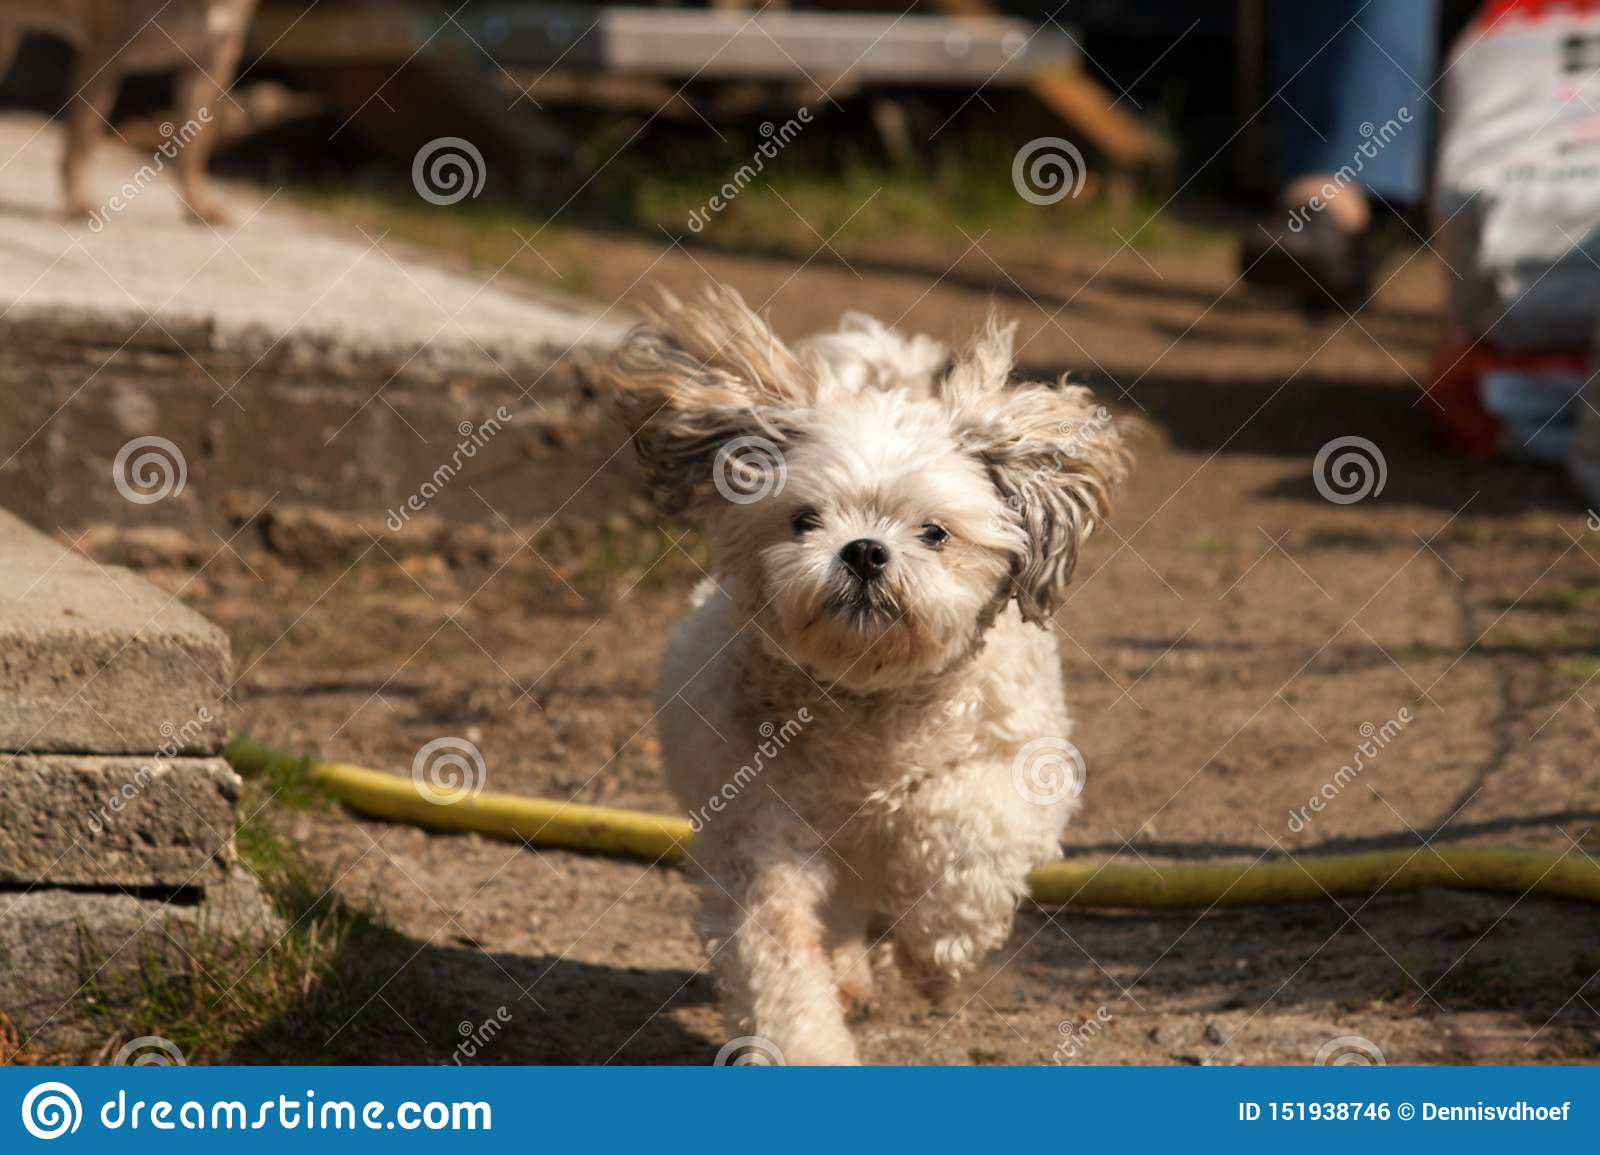 Small crossbreed dog walking in the park.